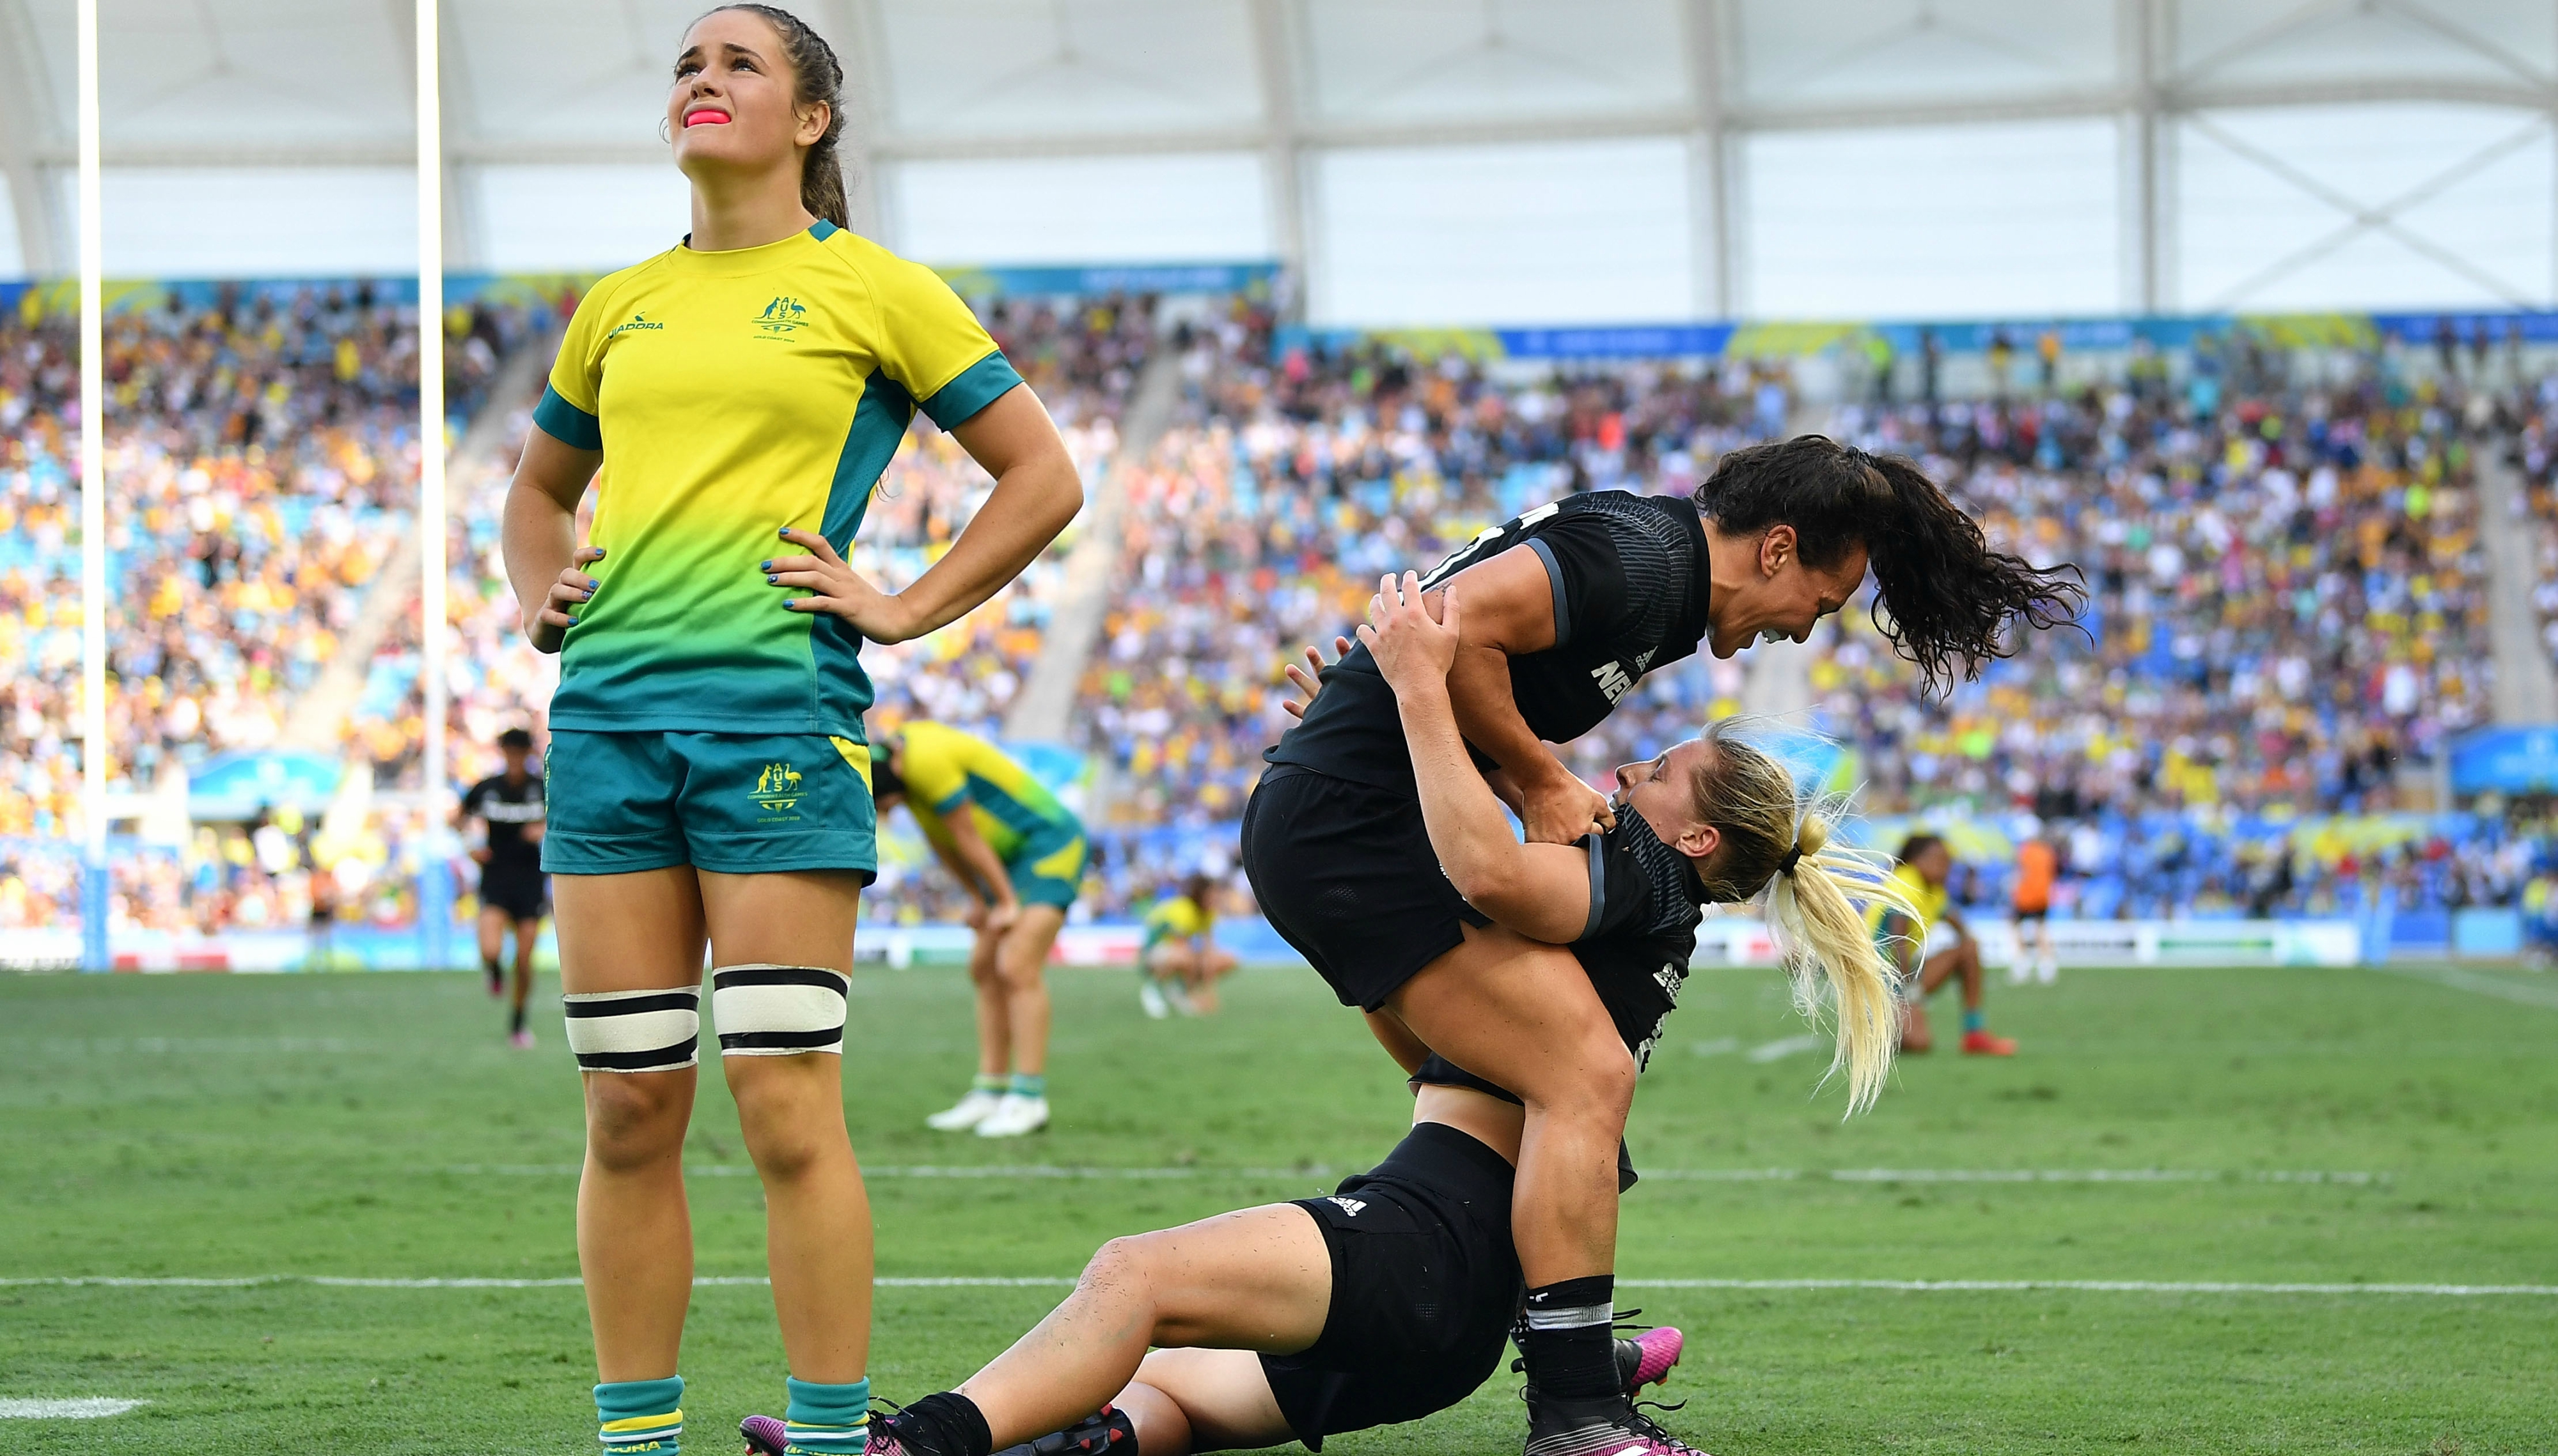 Games-Sensational Brazier try gives NZ women rugby sevens gold